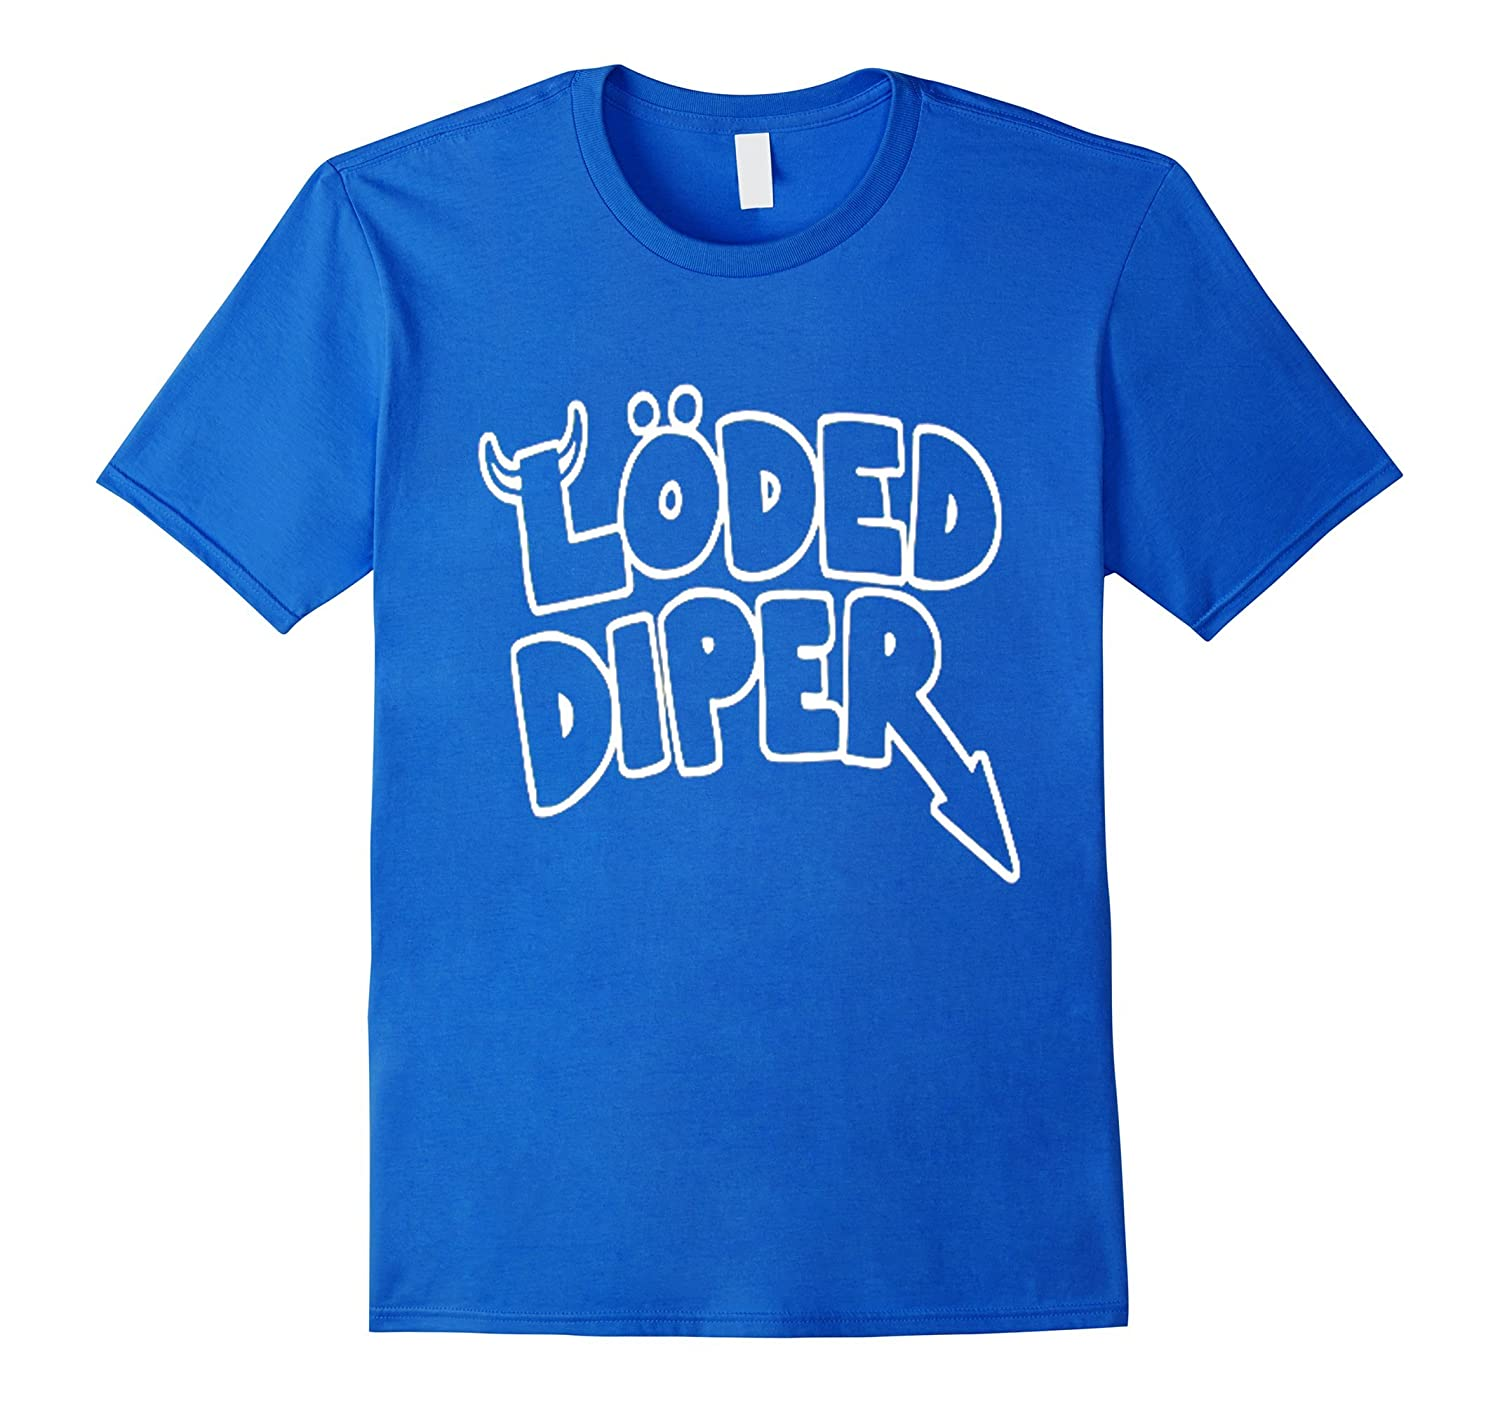 Funny Loded Diper T Shirt